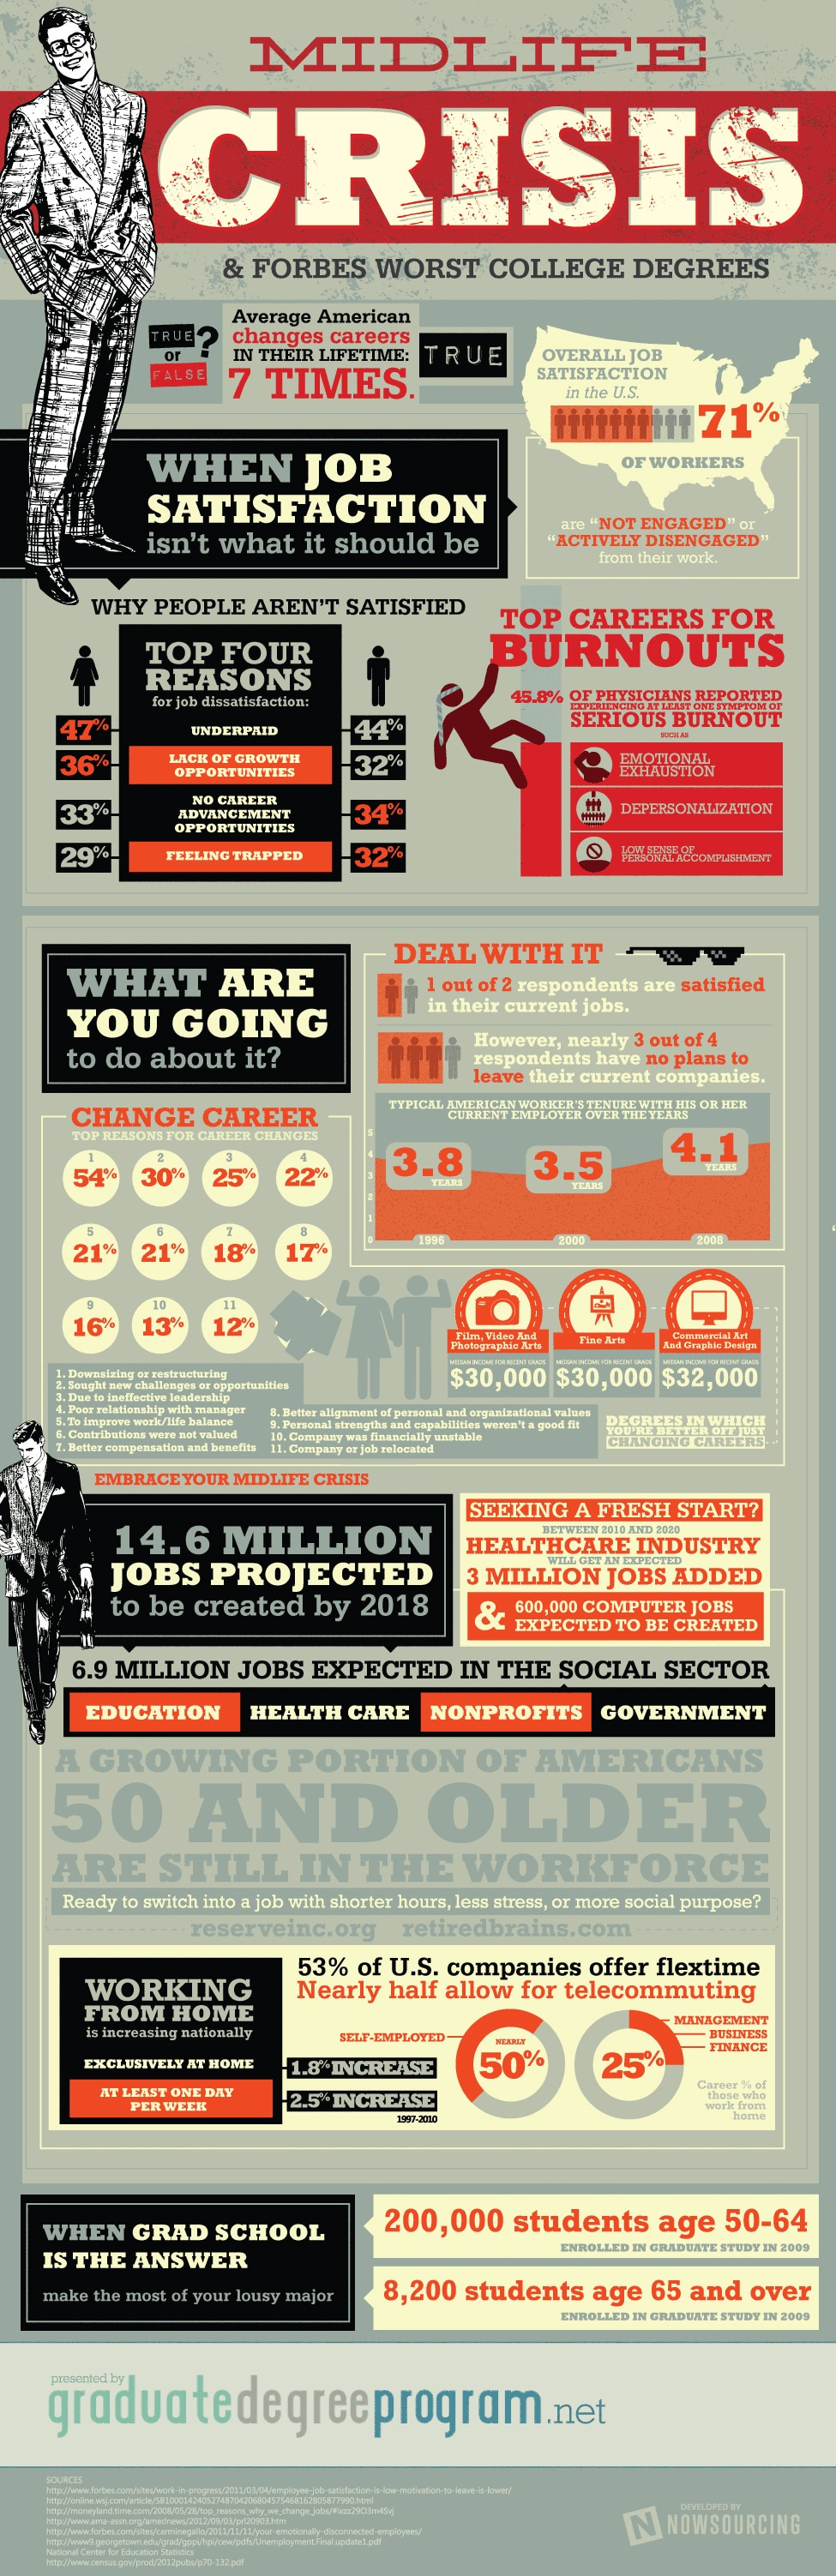 Midlife Crisis: Overall Job Satisfaction In America [Infographic]